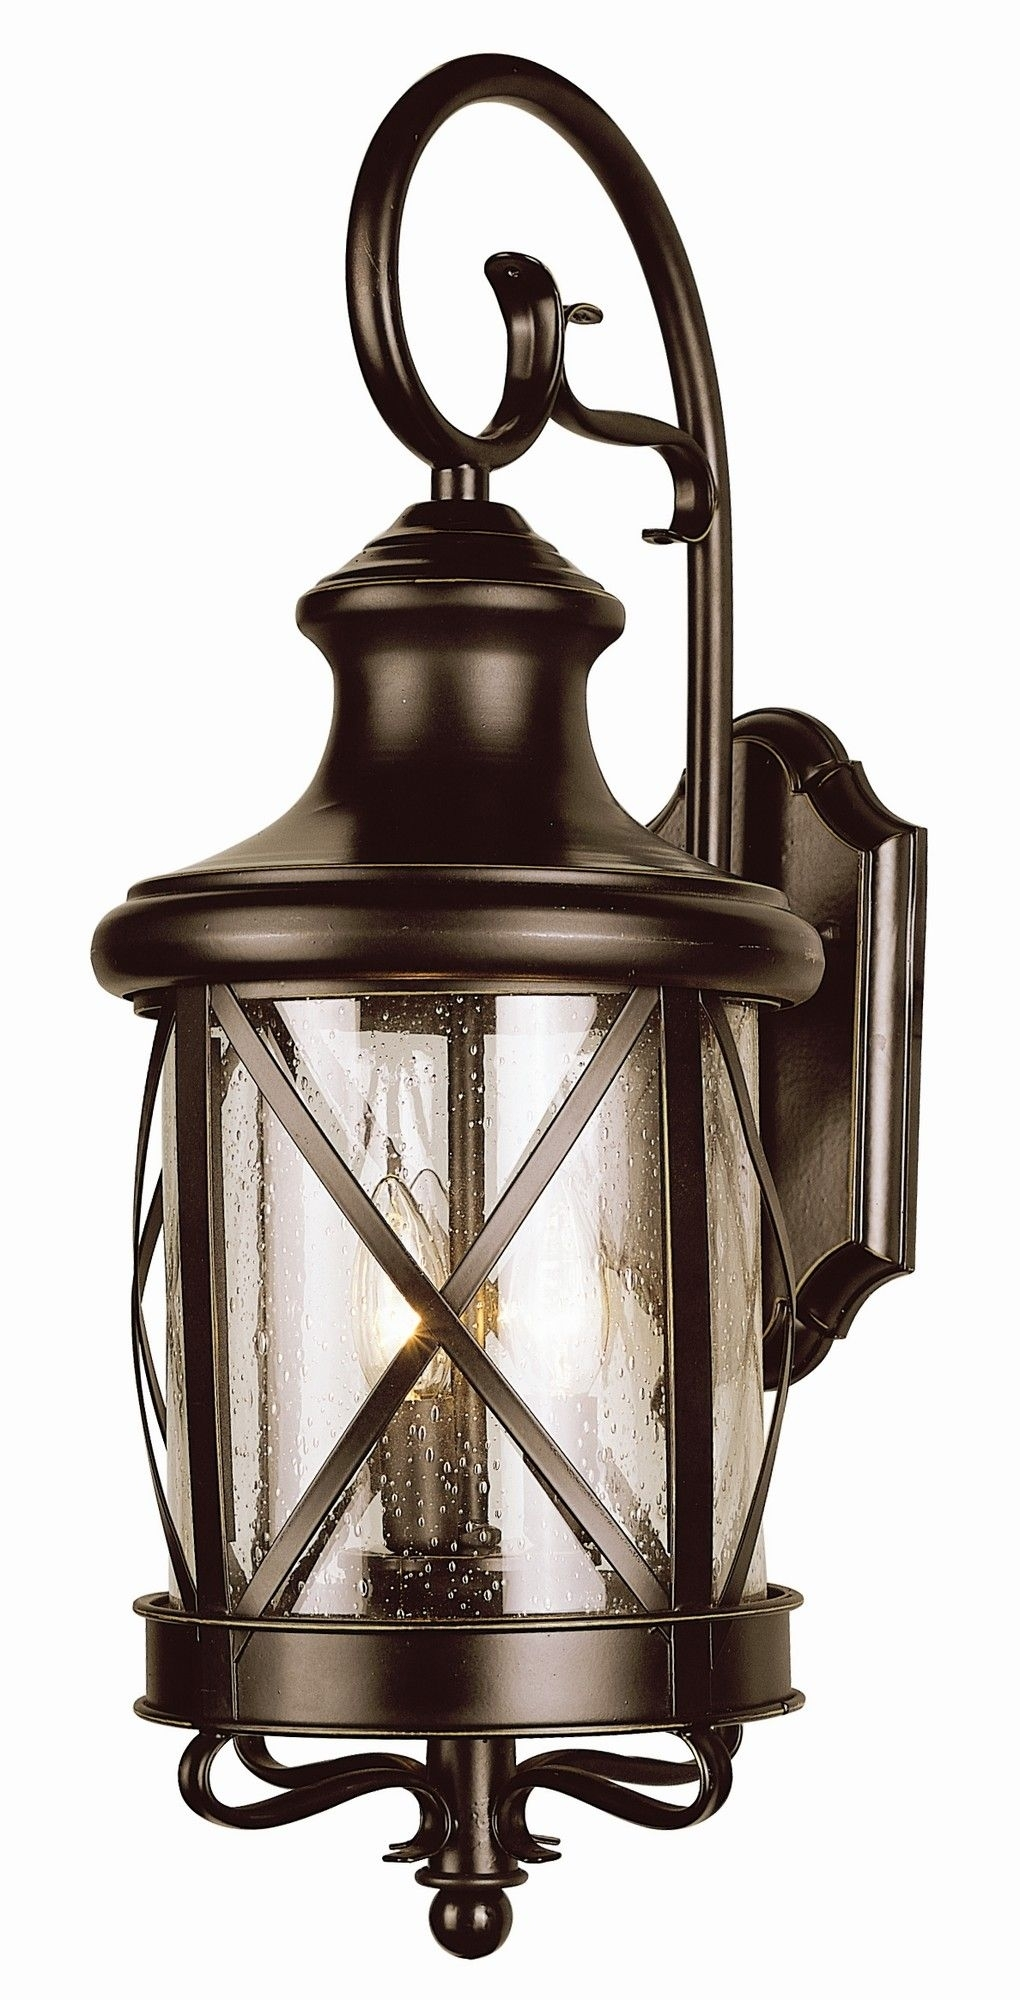 Inspiration about Transglobe Lighting Outdoor Wall Lantern | Wayfair | Lighting With Regard To Outdoor Wall Lantern By Transglobe Lighting (#3 of 15)